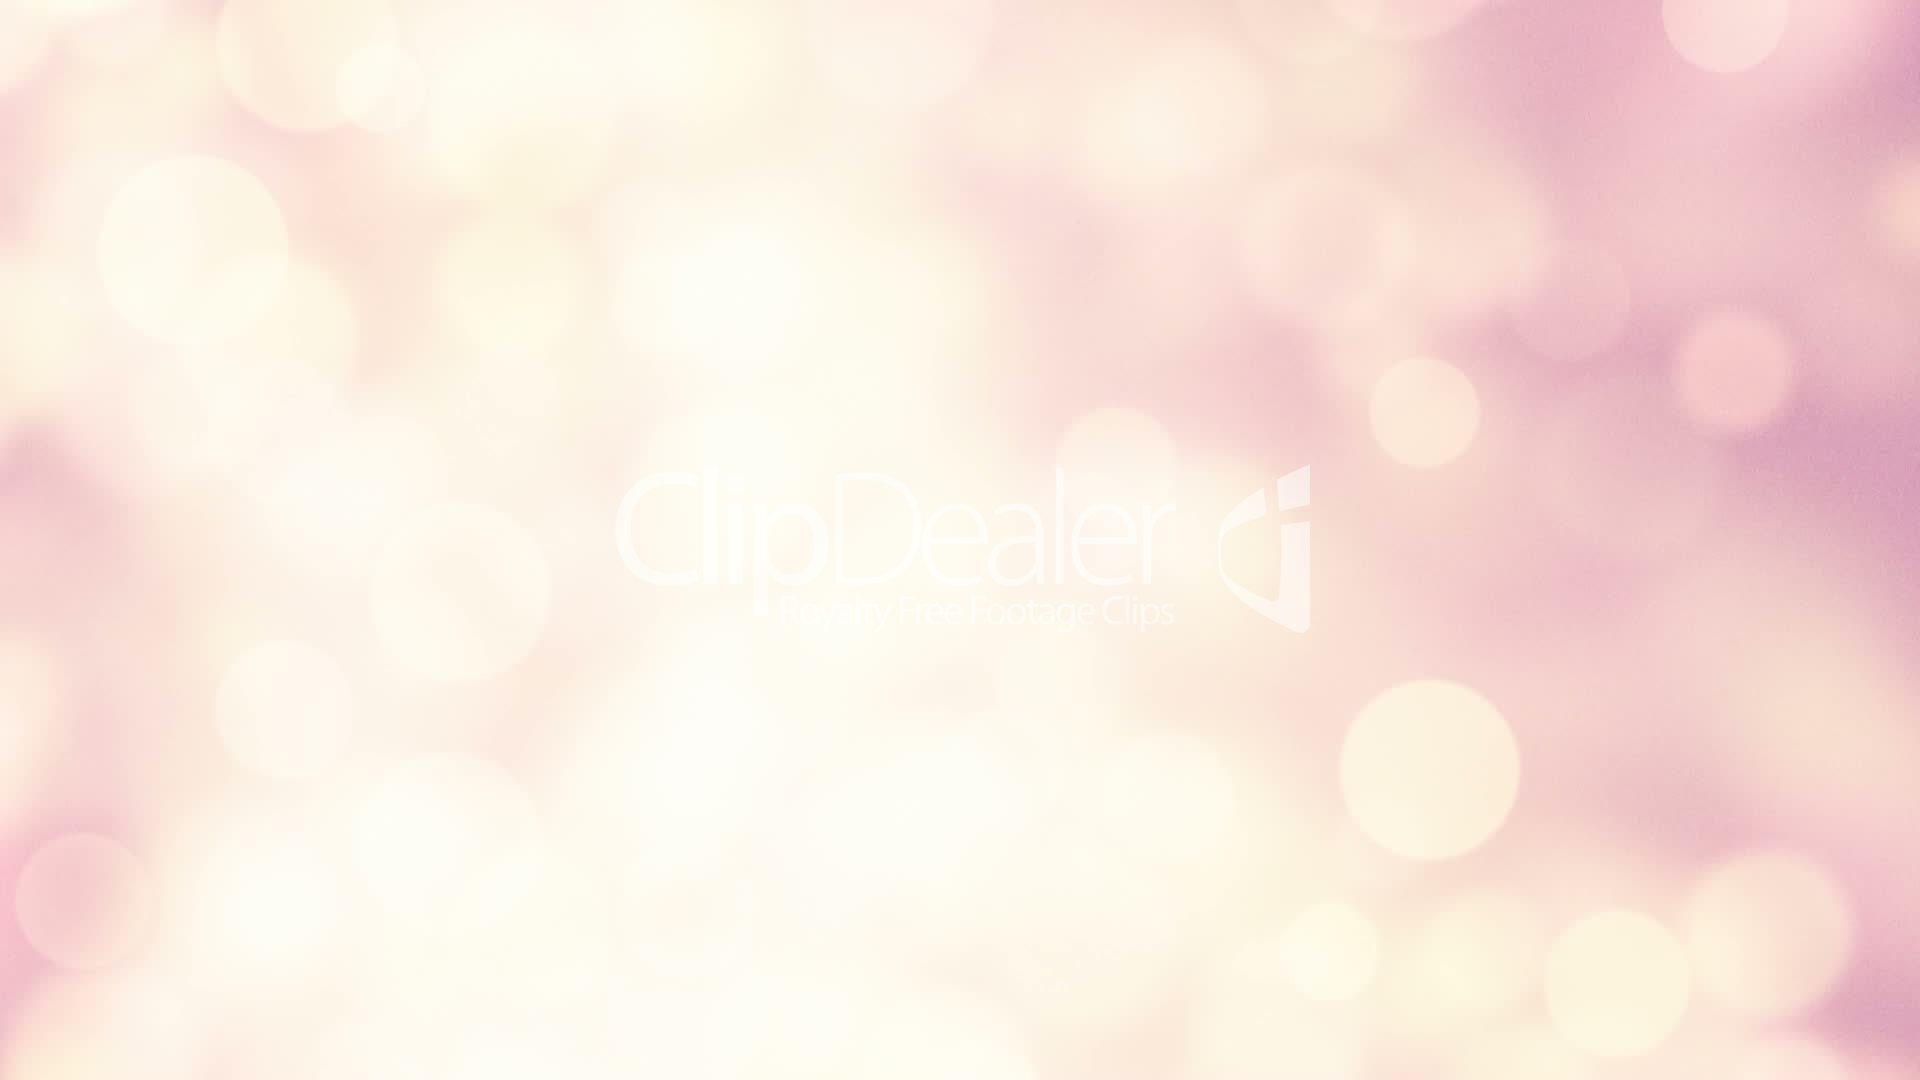 Light Pink Wallpapers Download 1920x1080